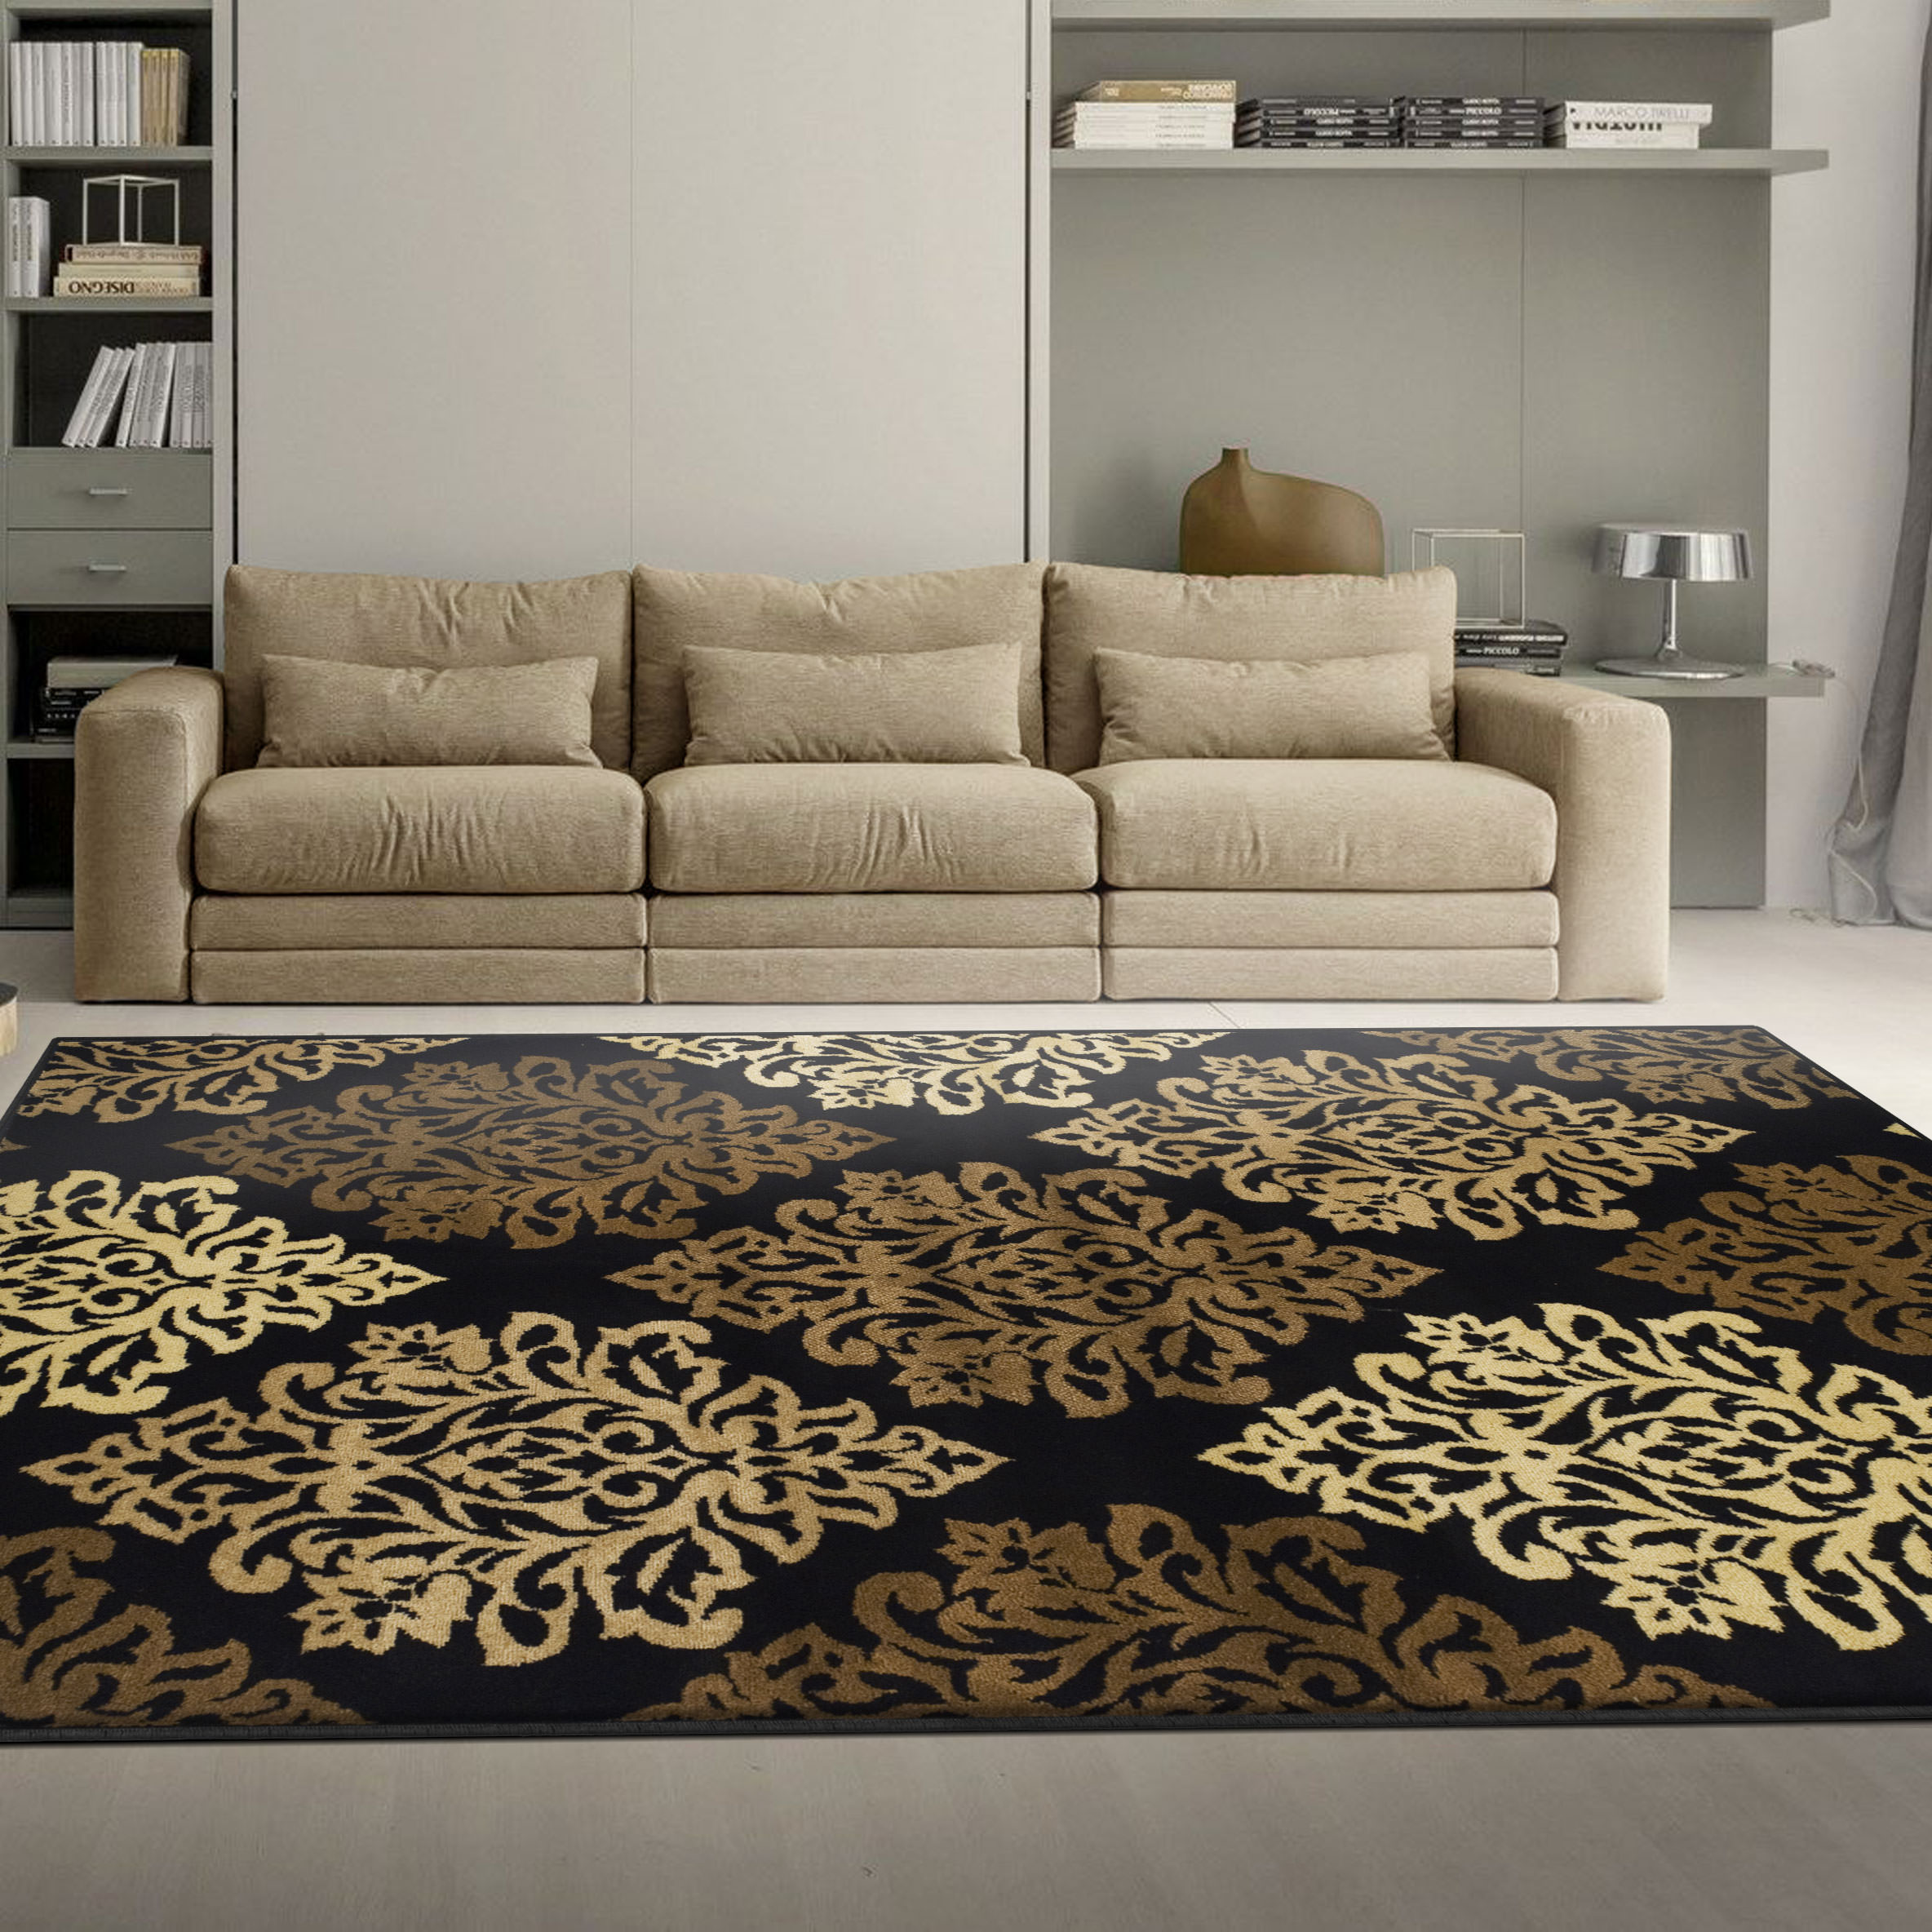 Superior Modern Elegant Damask Pattern, 10mm Pile with Jute Backing, Affordable Contemporary Danvers Collection Area Rugs